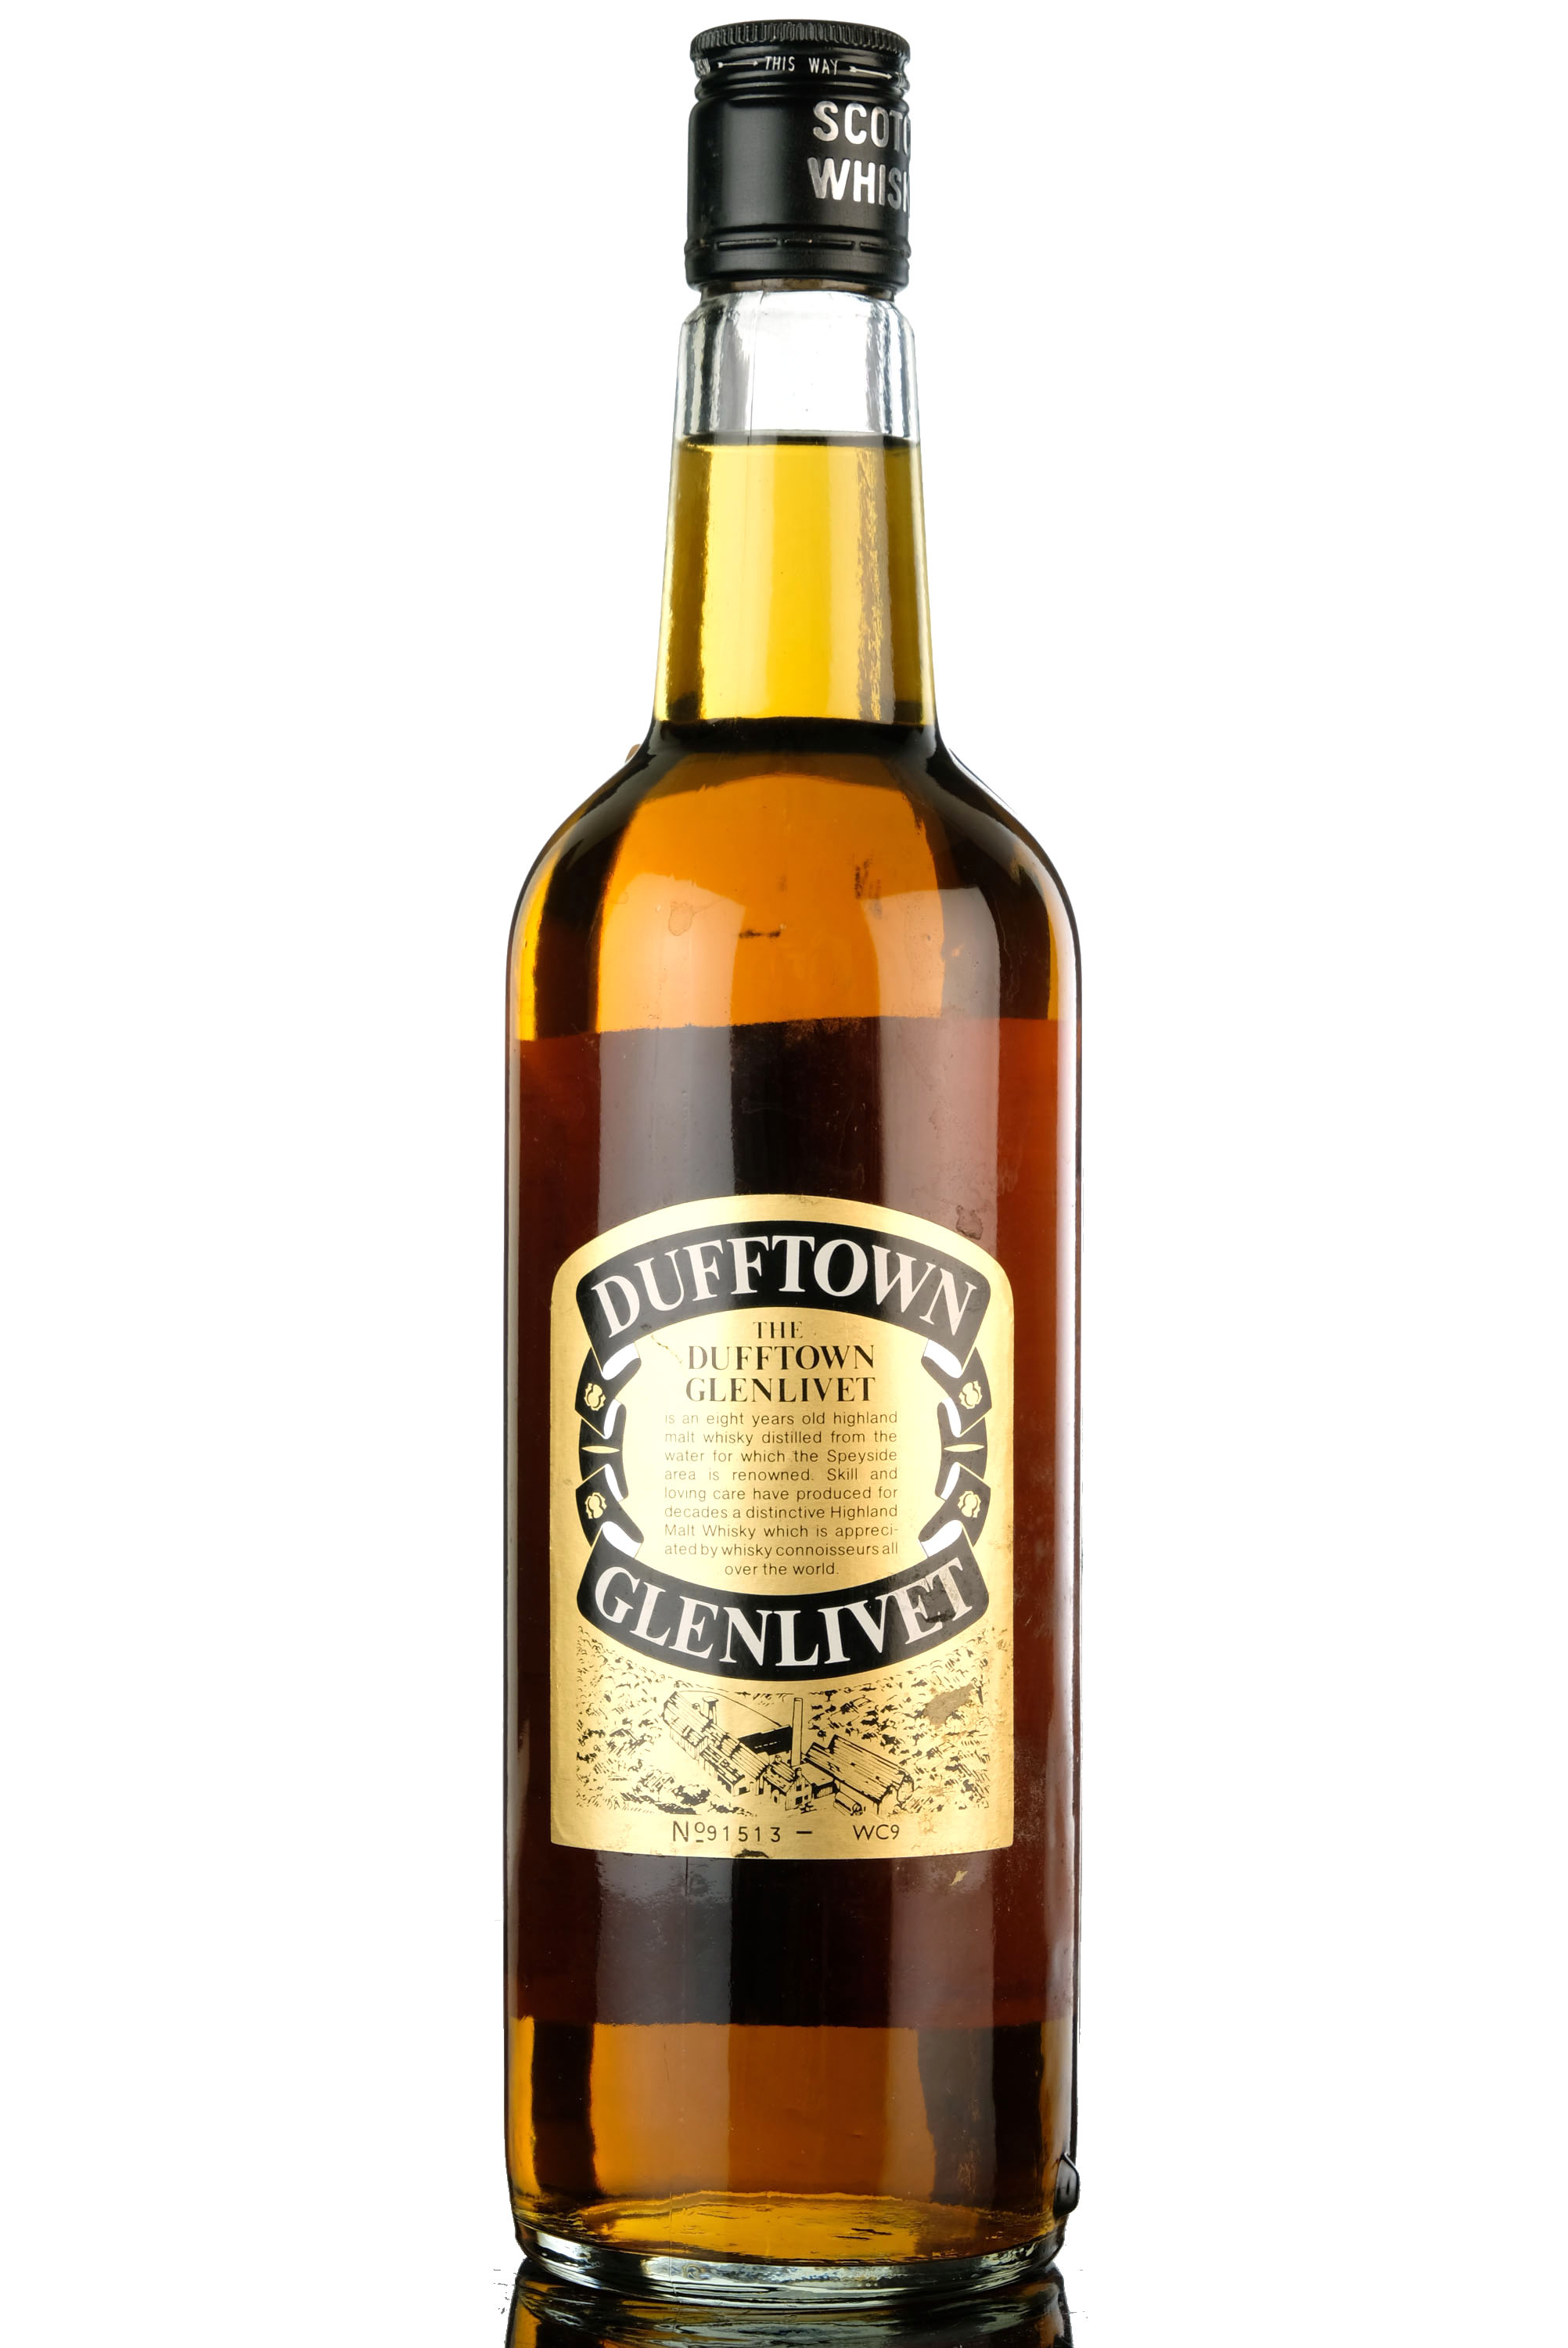 dufftown-glenlivet 8 year old - late 1970s